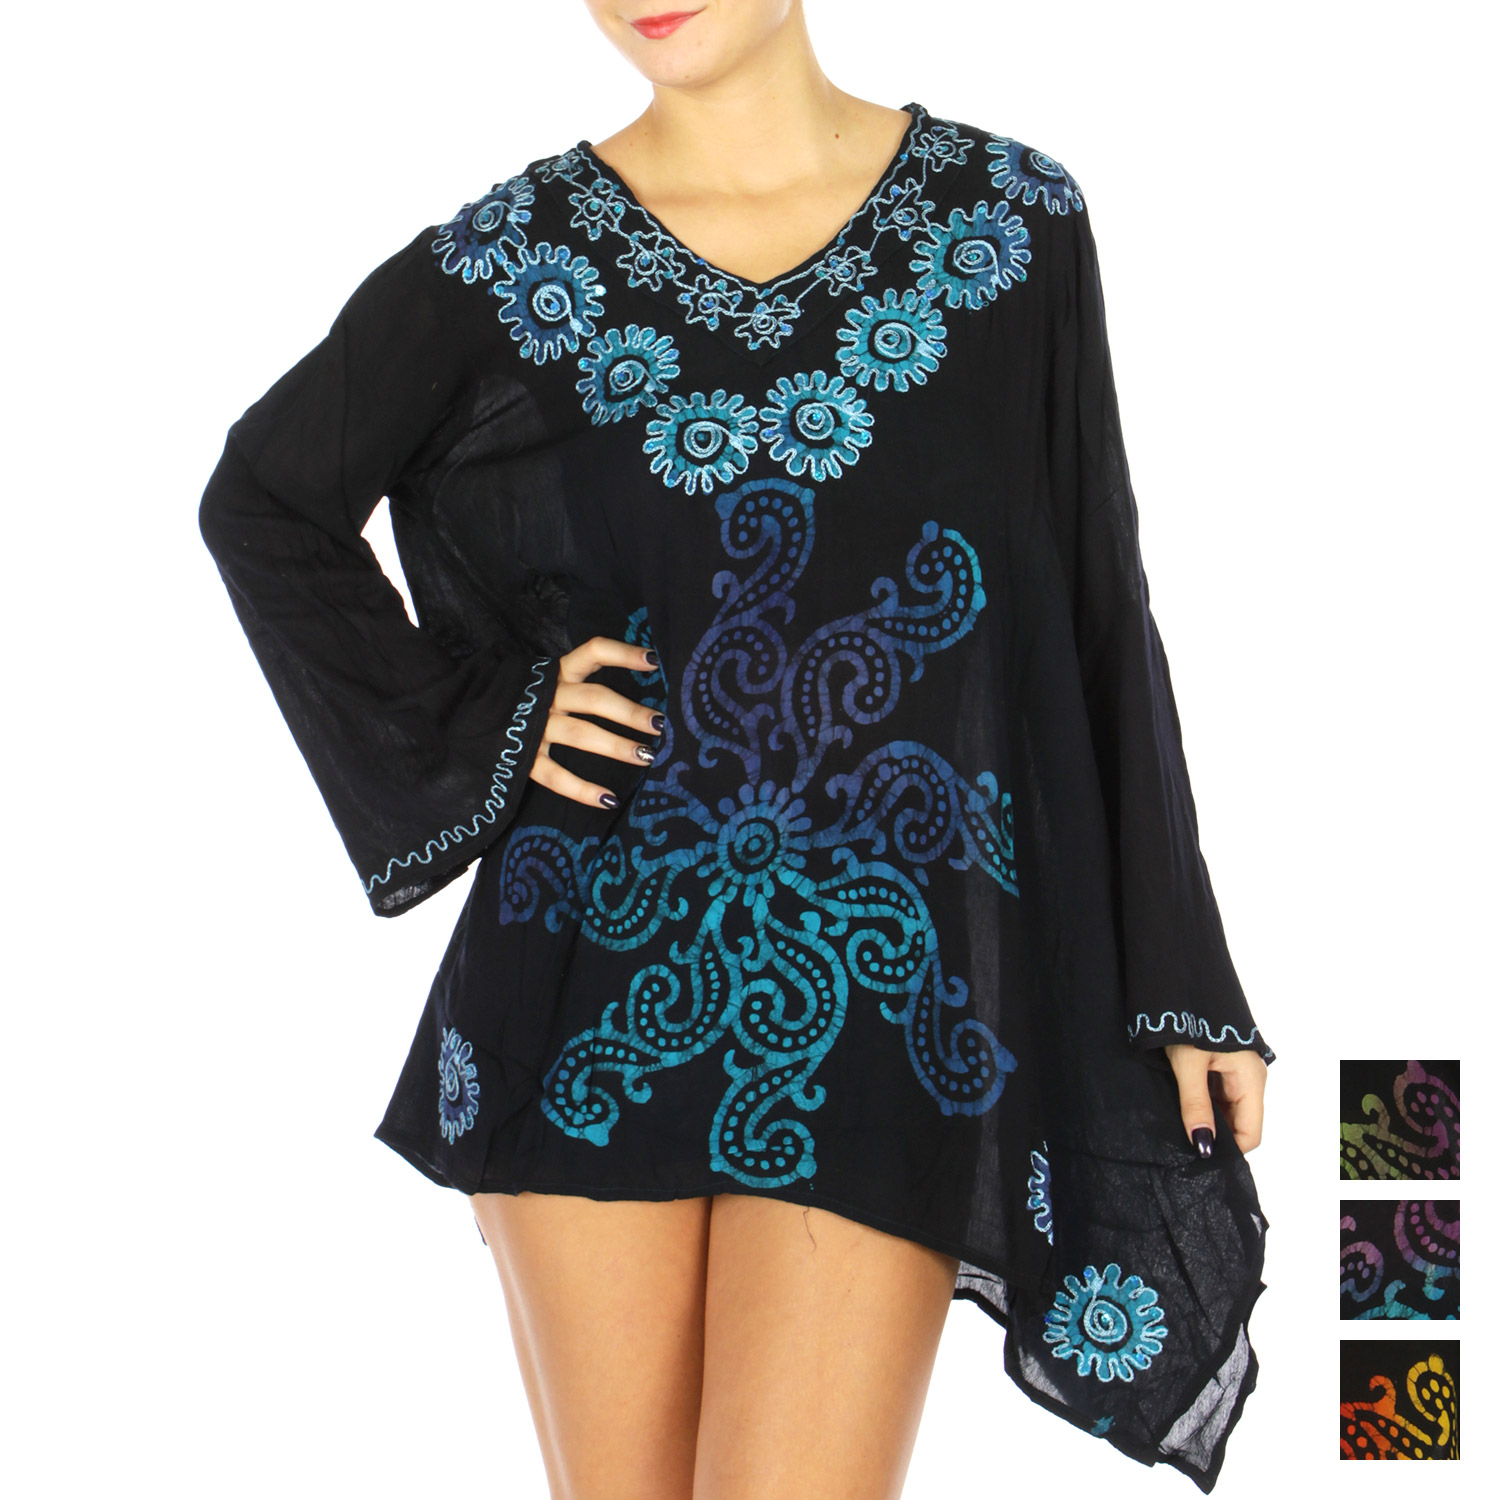 Floral Embroidery UMBRELLA Tunic Top